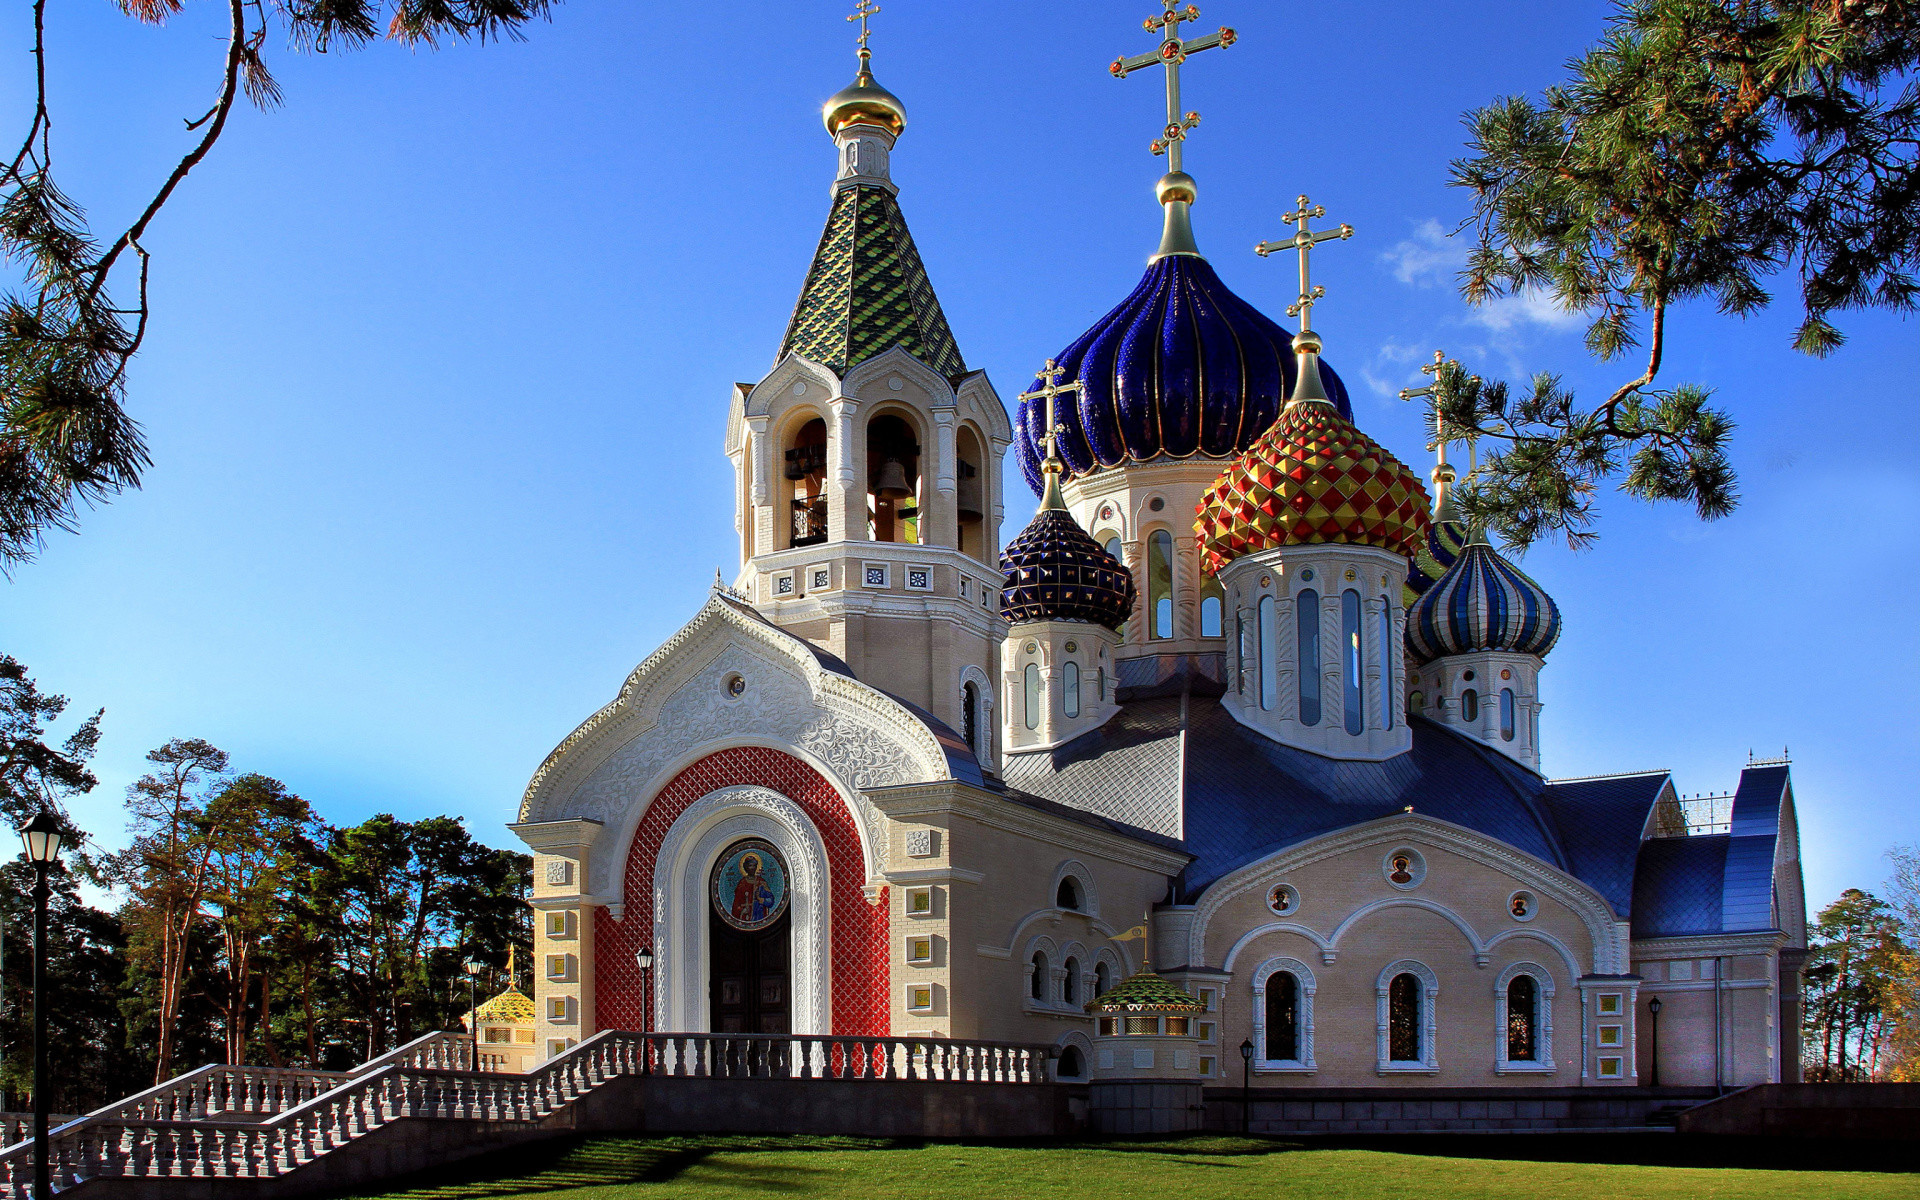 1920x1200 Religious - Church Religious Architecture Russia Colorful Dome Wallpaper